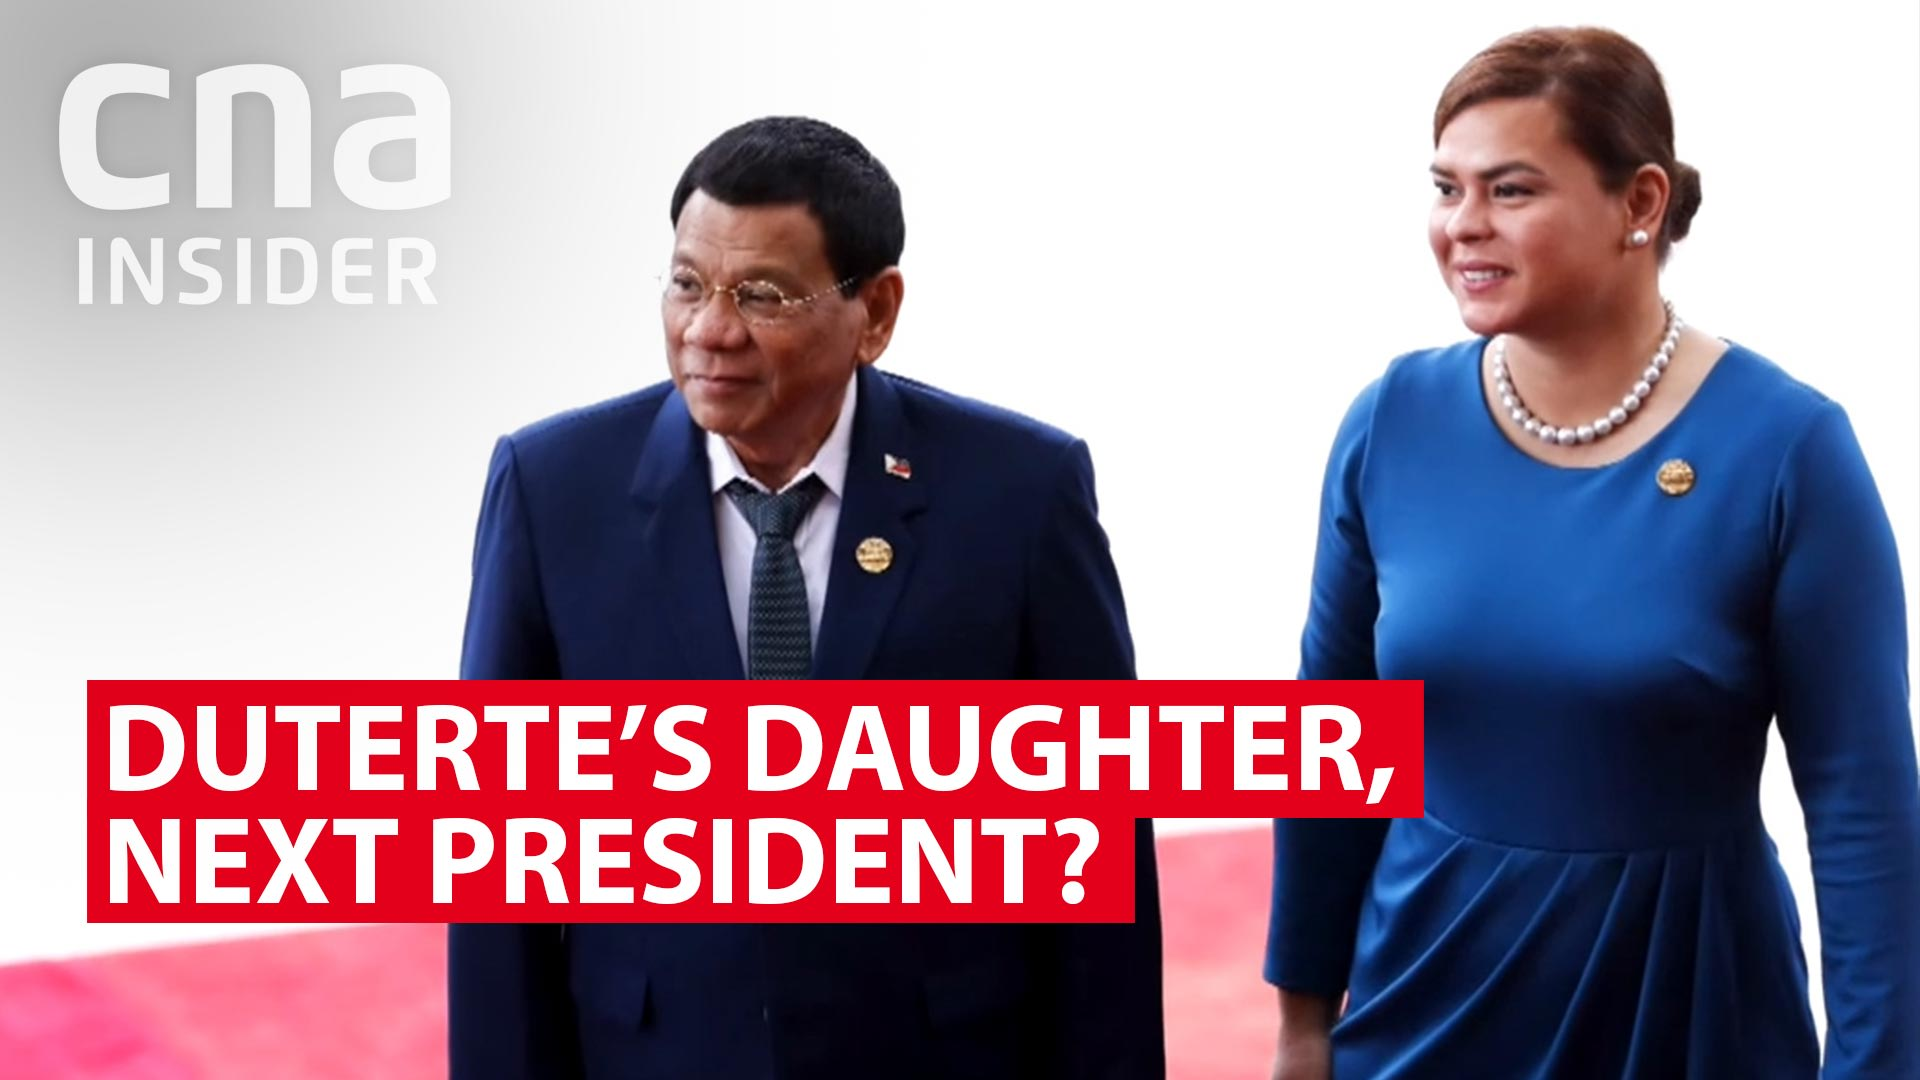 Duterte's Daughter, Next President?